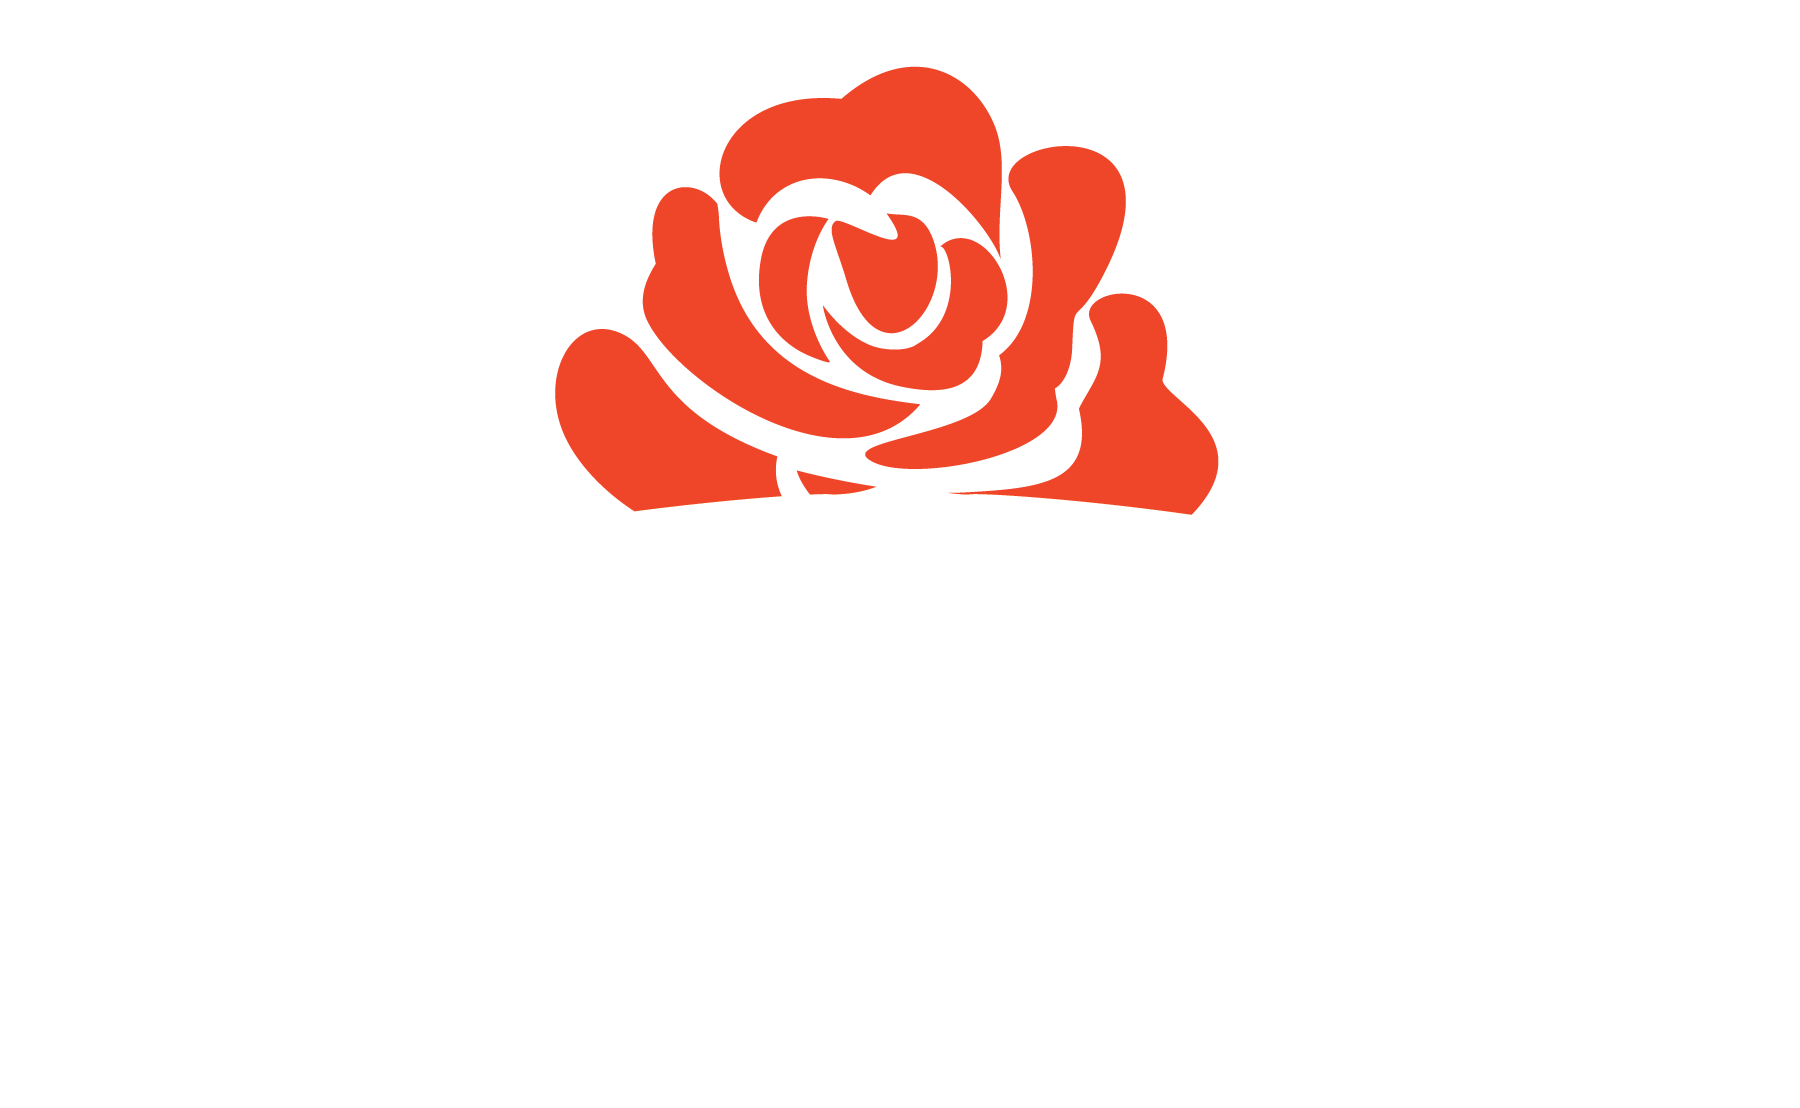 Rosewood House